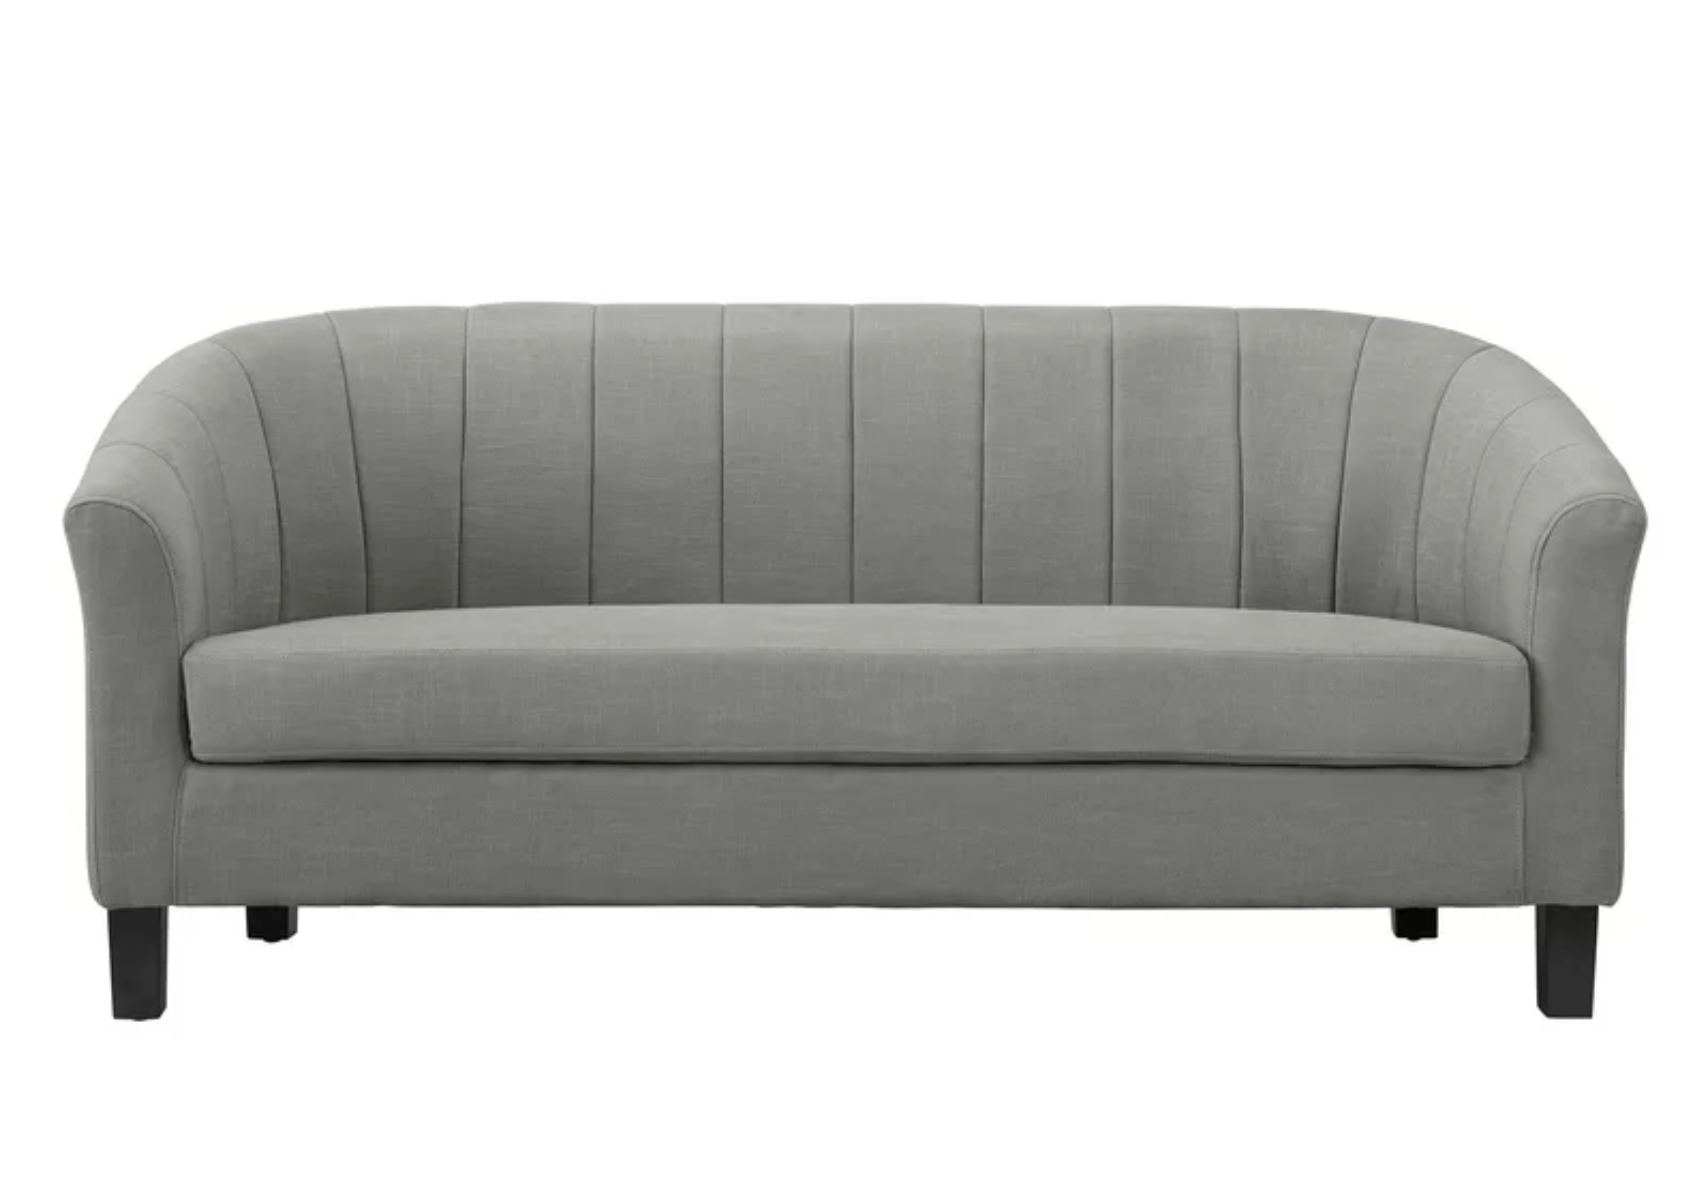 Magnificent Yes Its Possible The Best Sofas Under 500 Expressive Short Links Chair Design For Home Short Linksinfo